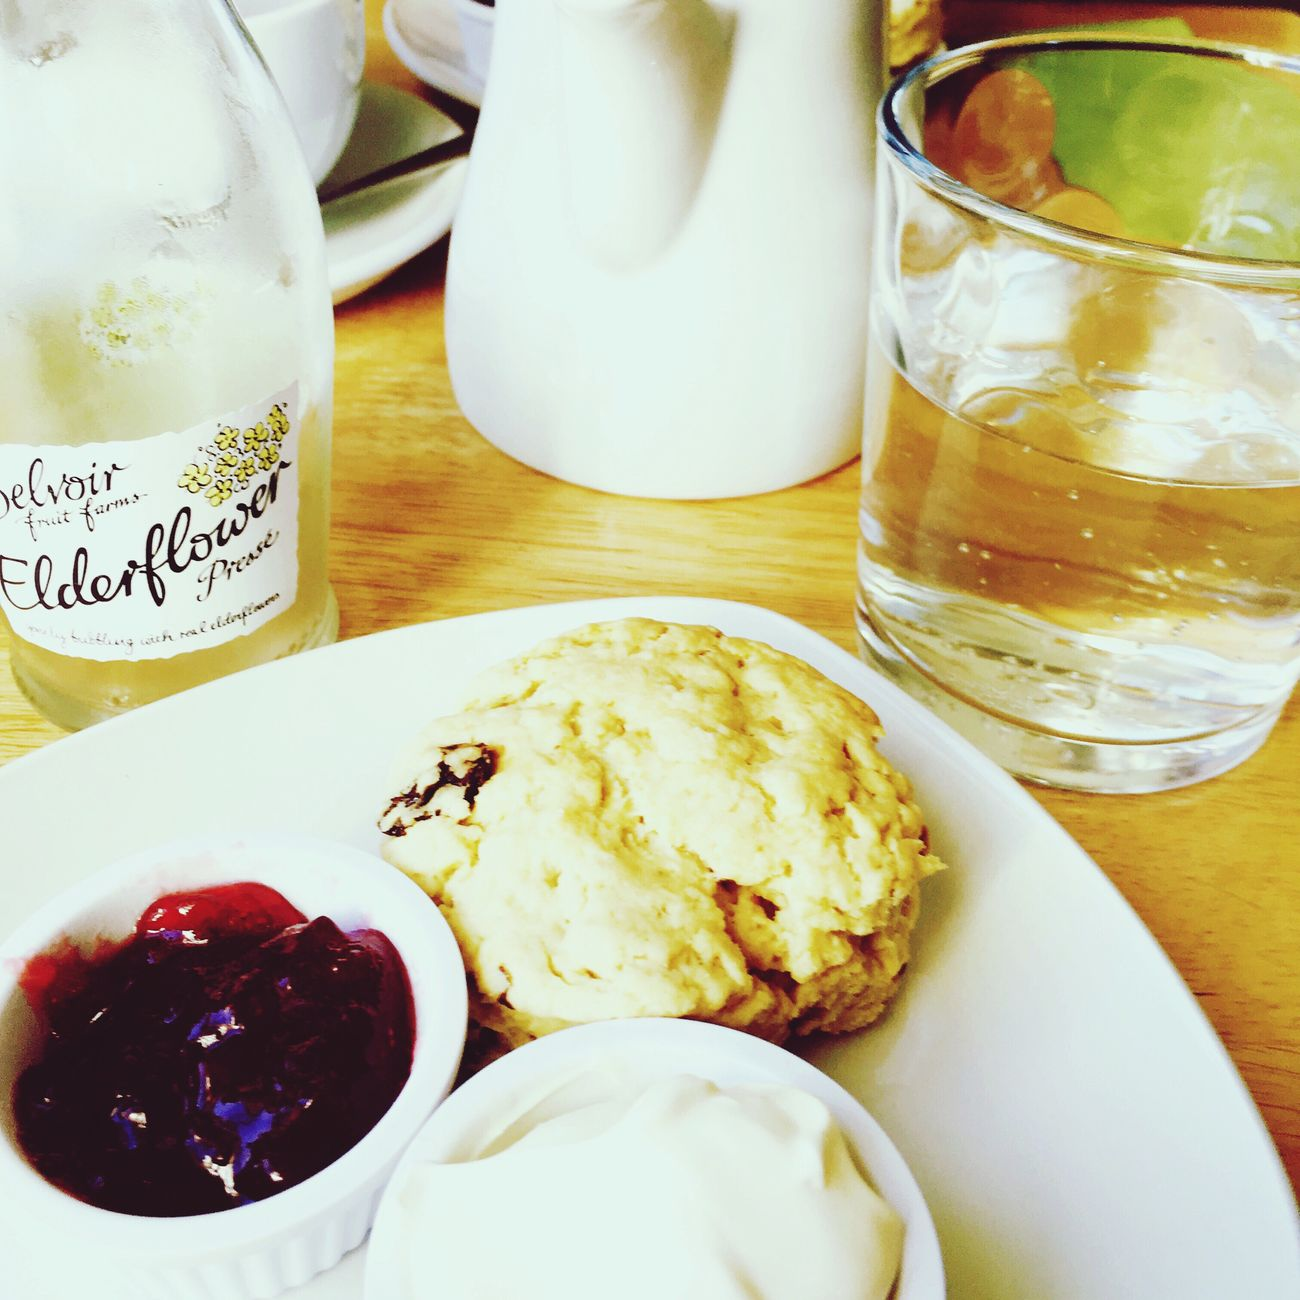 Scones Cafe Lavenderfarm Elderflower Tea EyeEmNewHere EyeEmNewHere